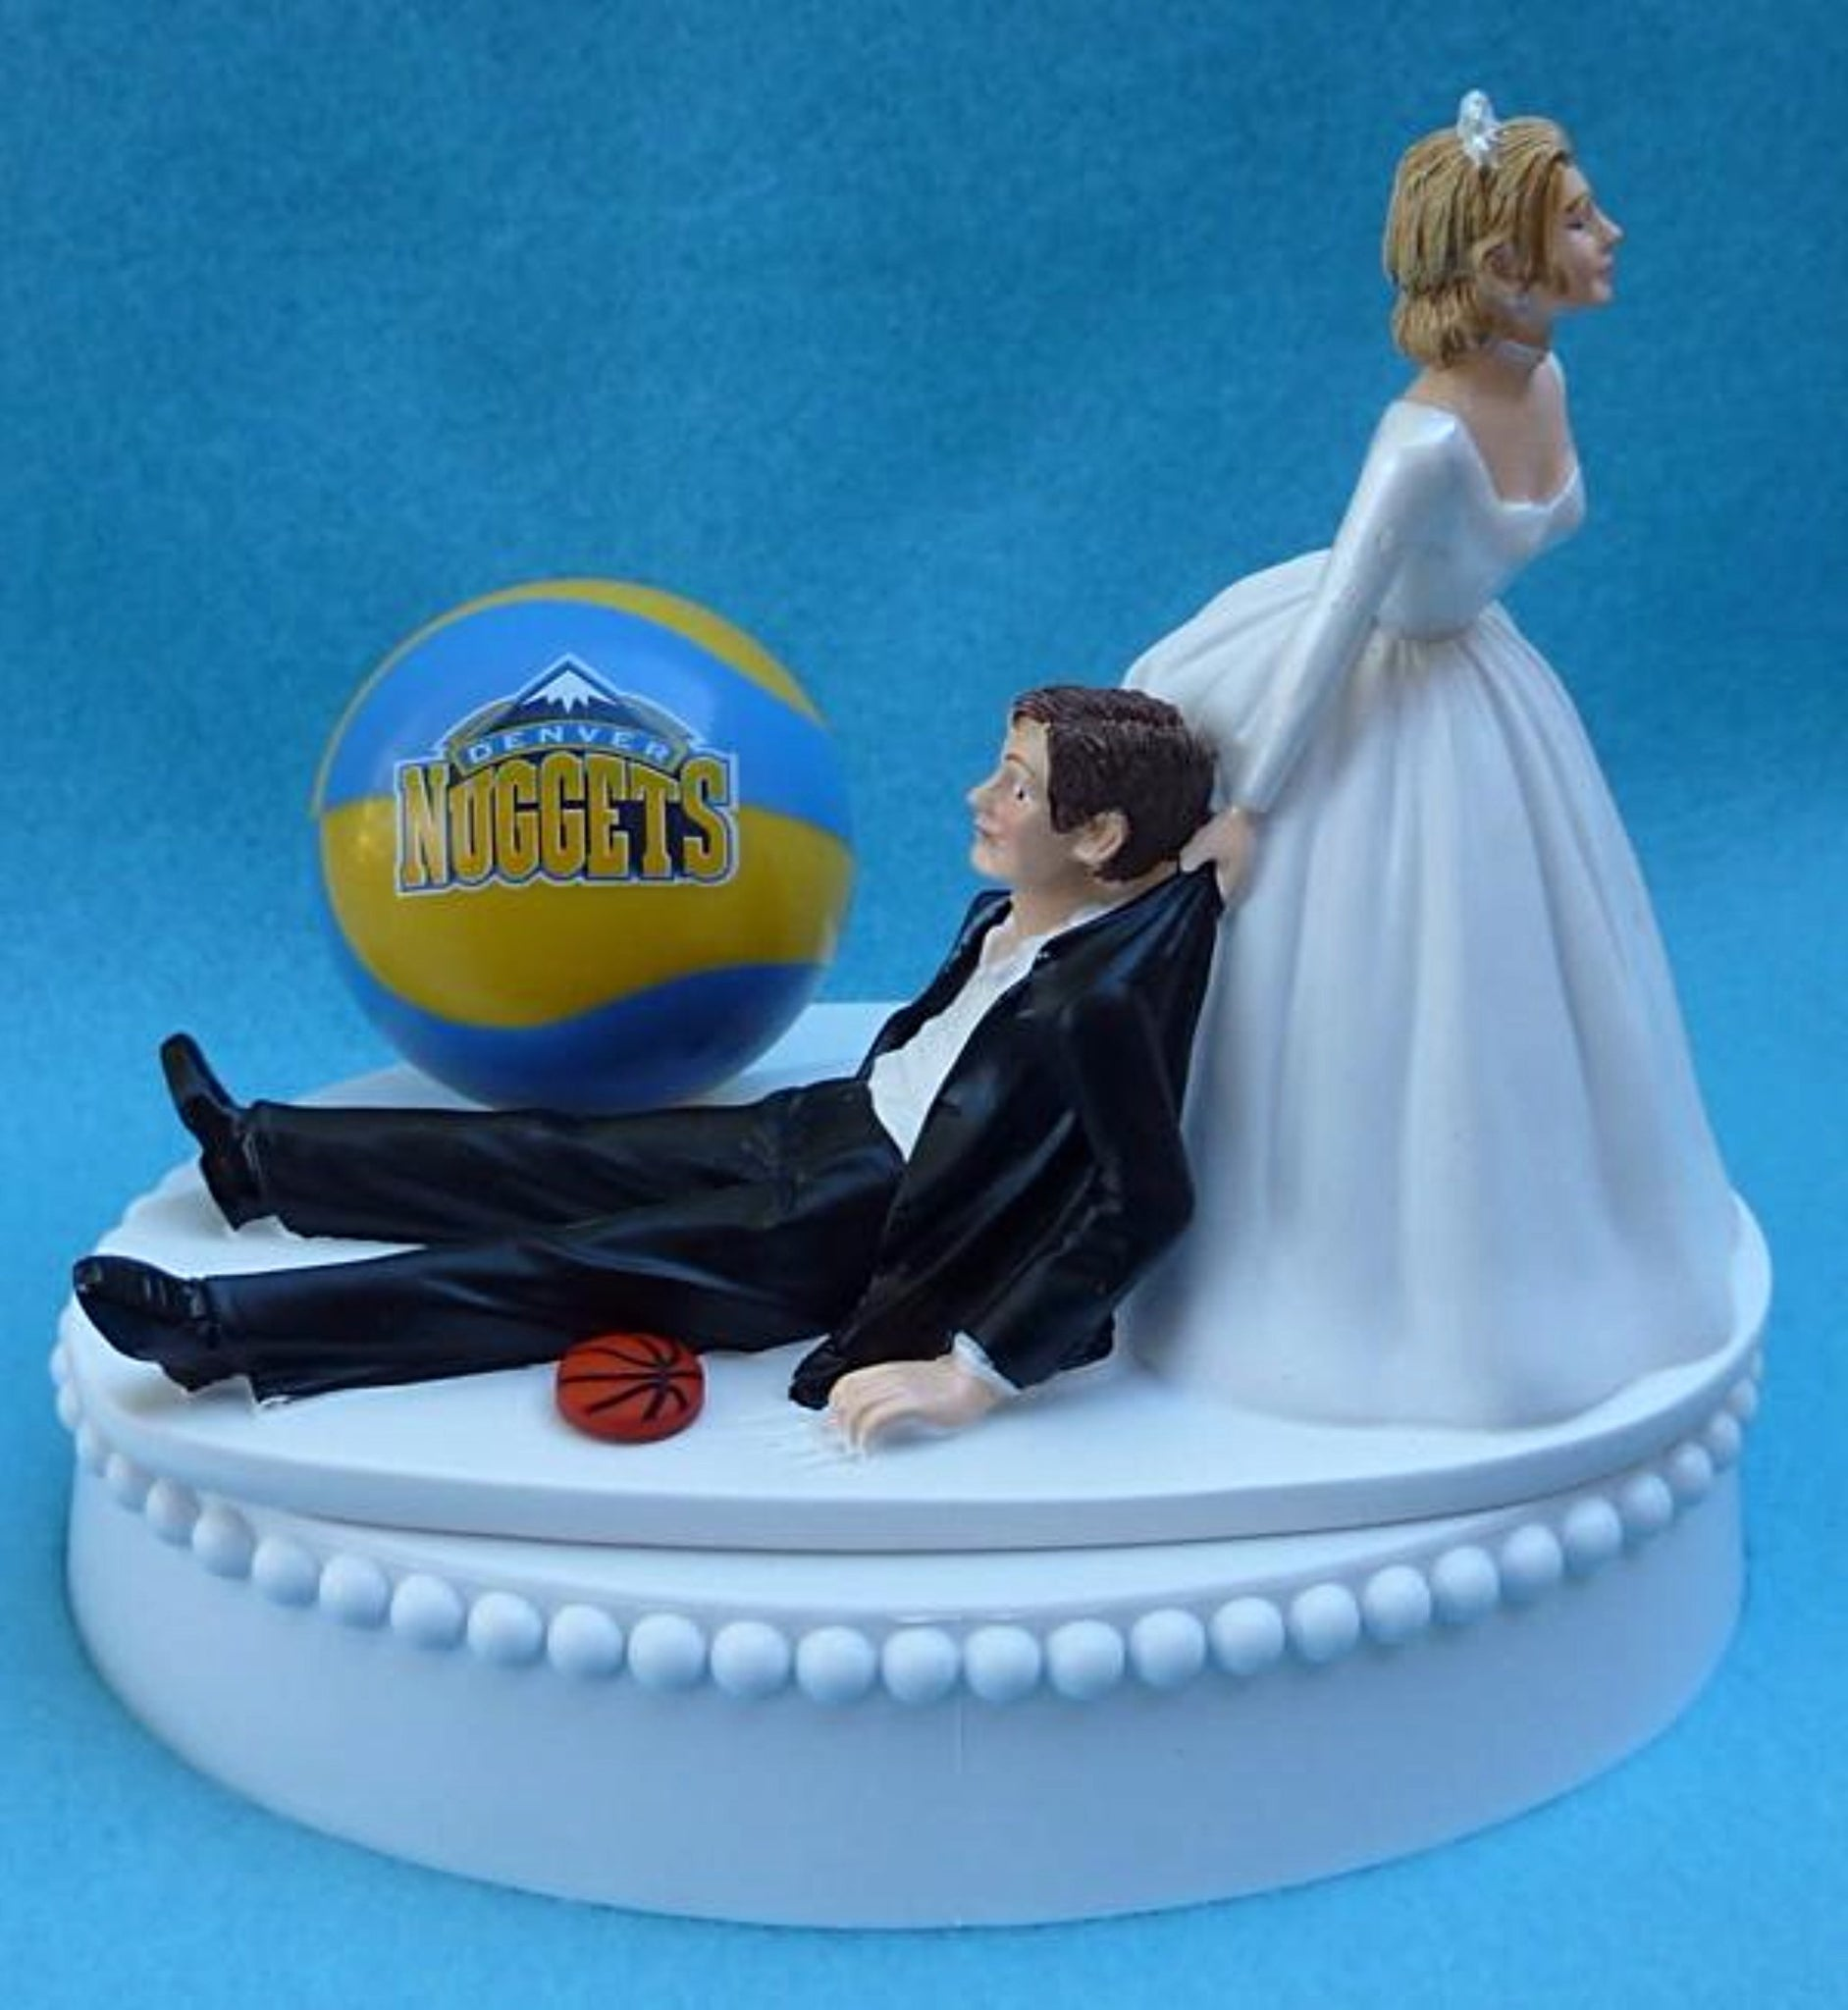 Denver Nuggets wedding cake topper NBA basketball Fun Wedding Things sports fans bride dragging groom humor